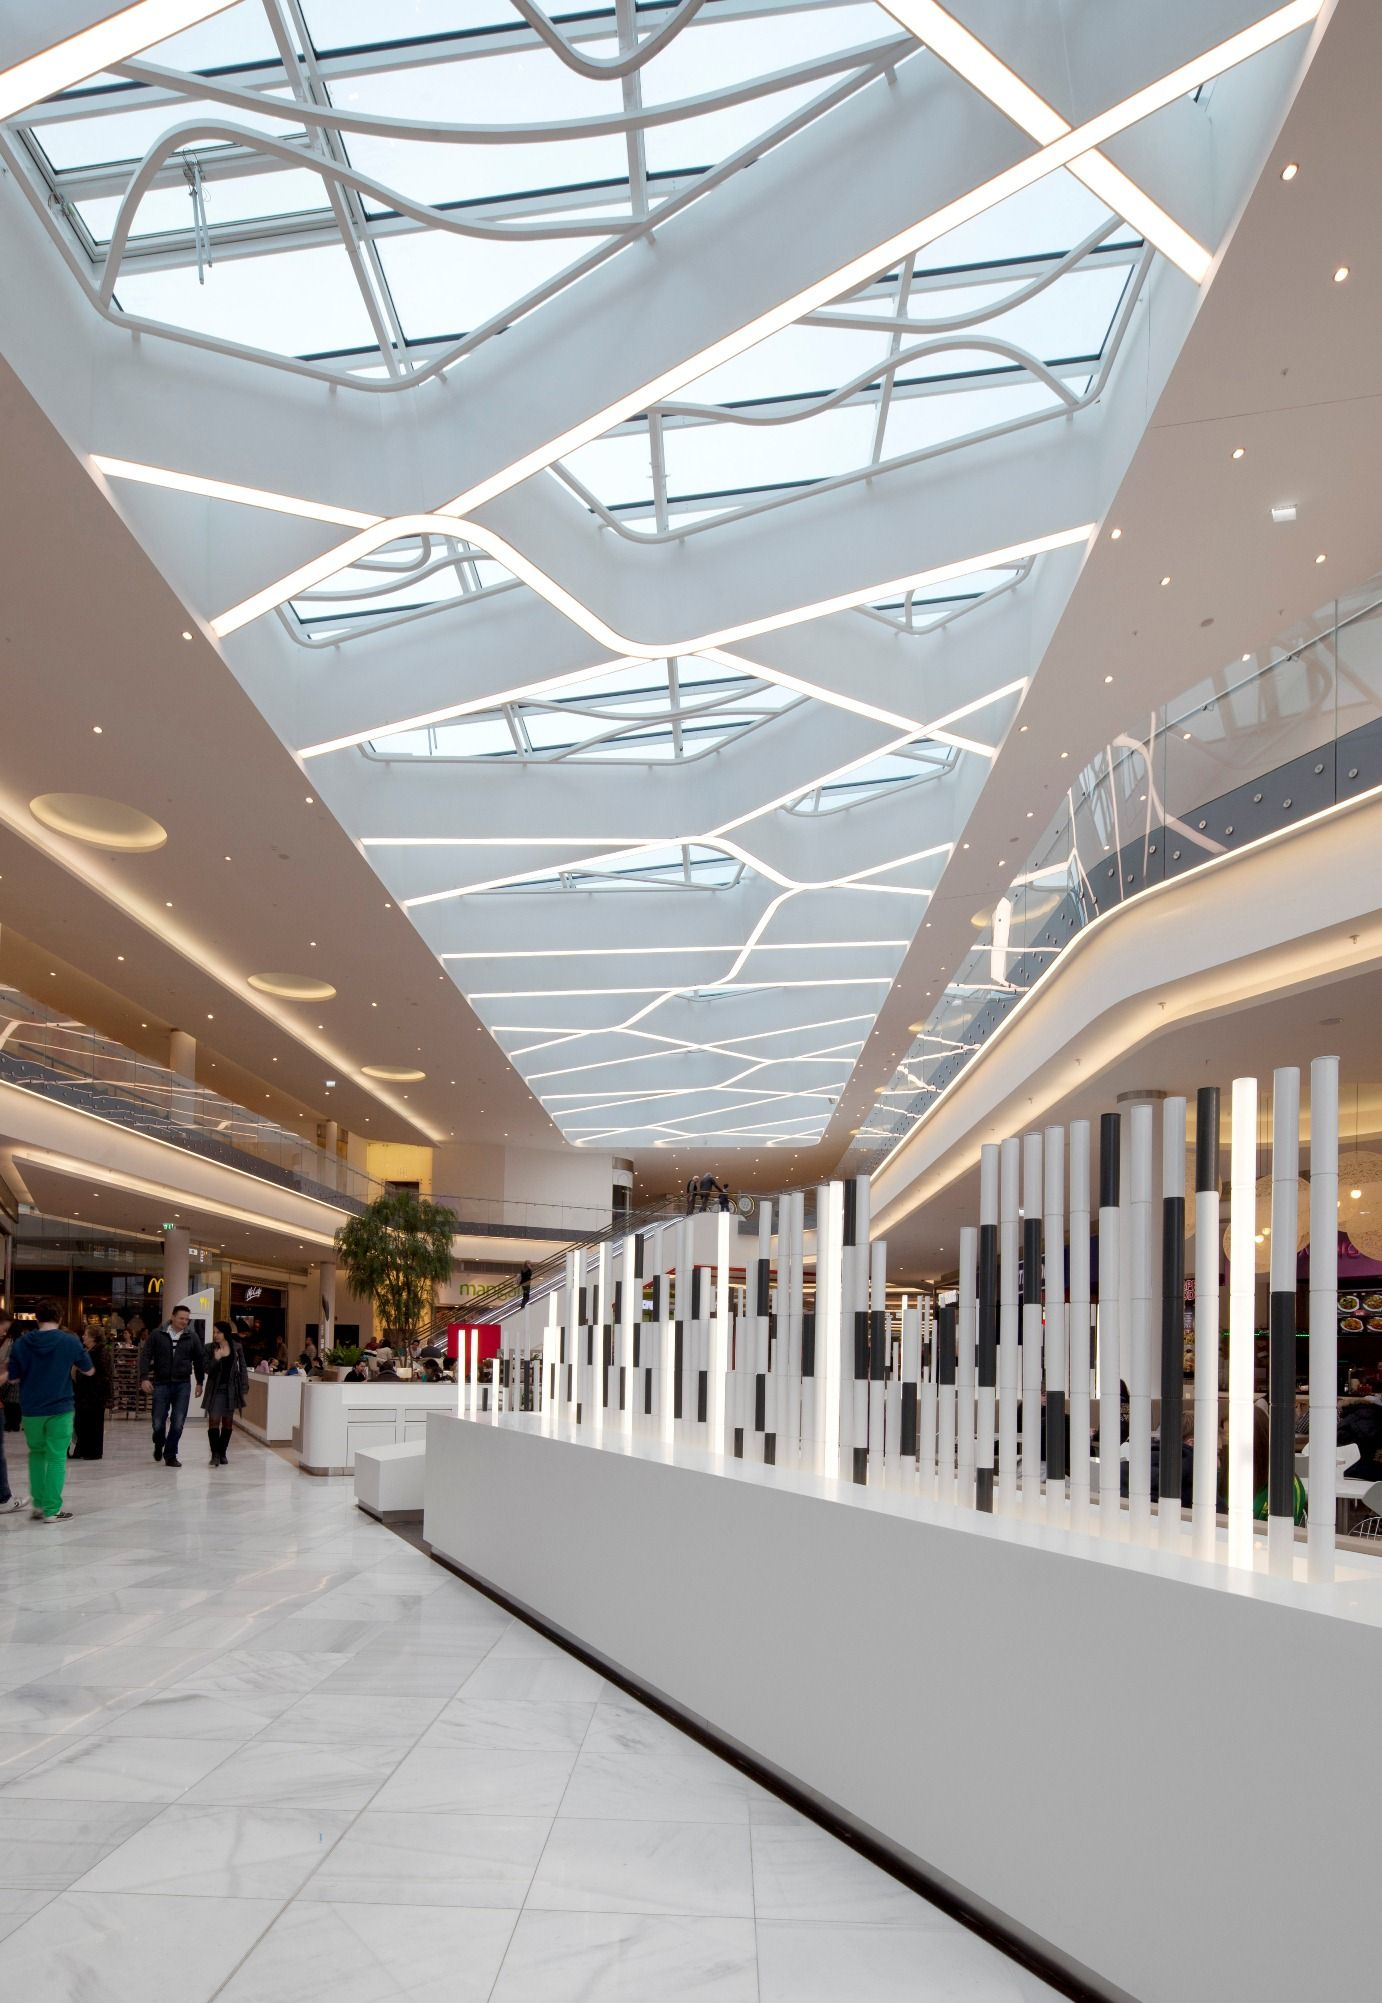 Ceiling Design Retail Retail Mall Lighting Shopping Mall In 2019 Shopping Mall